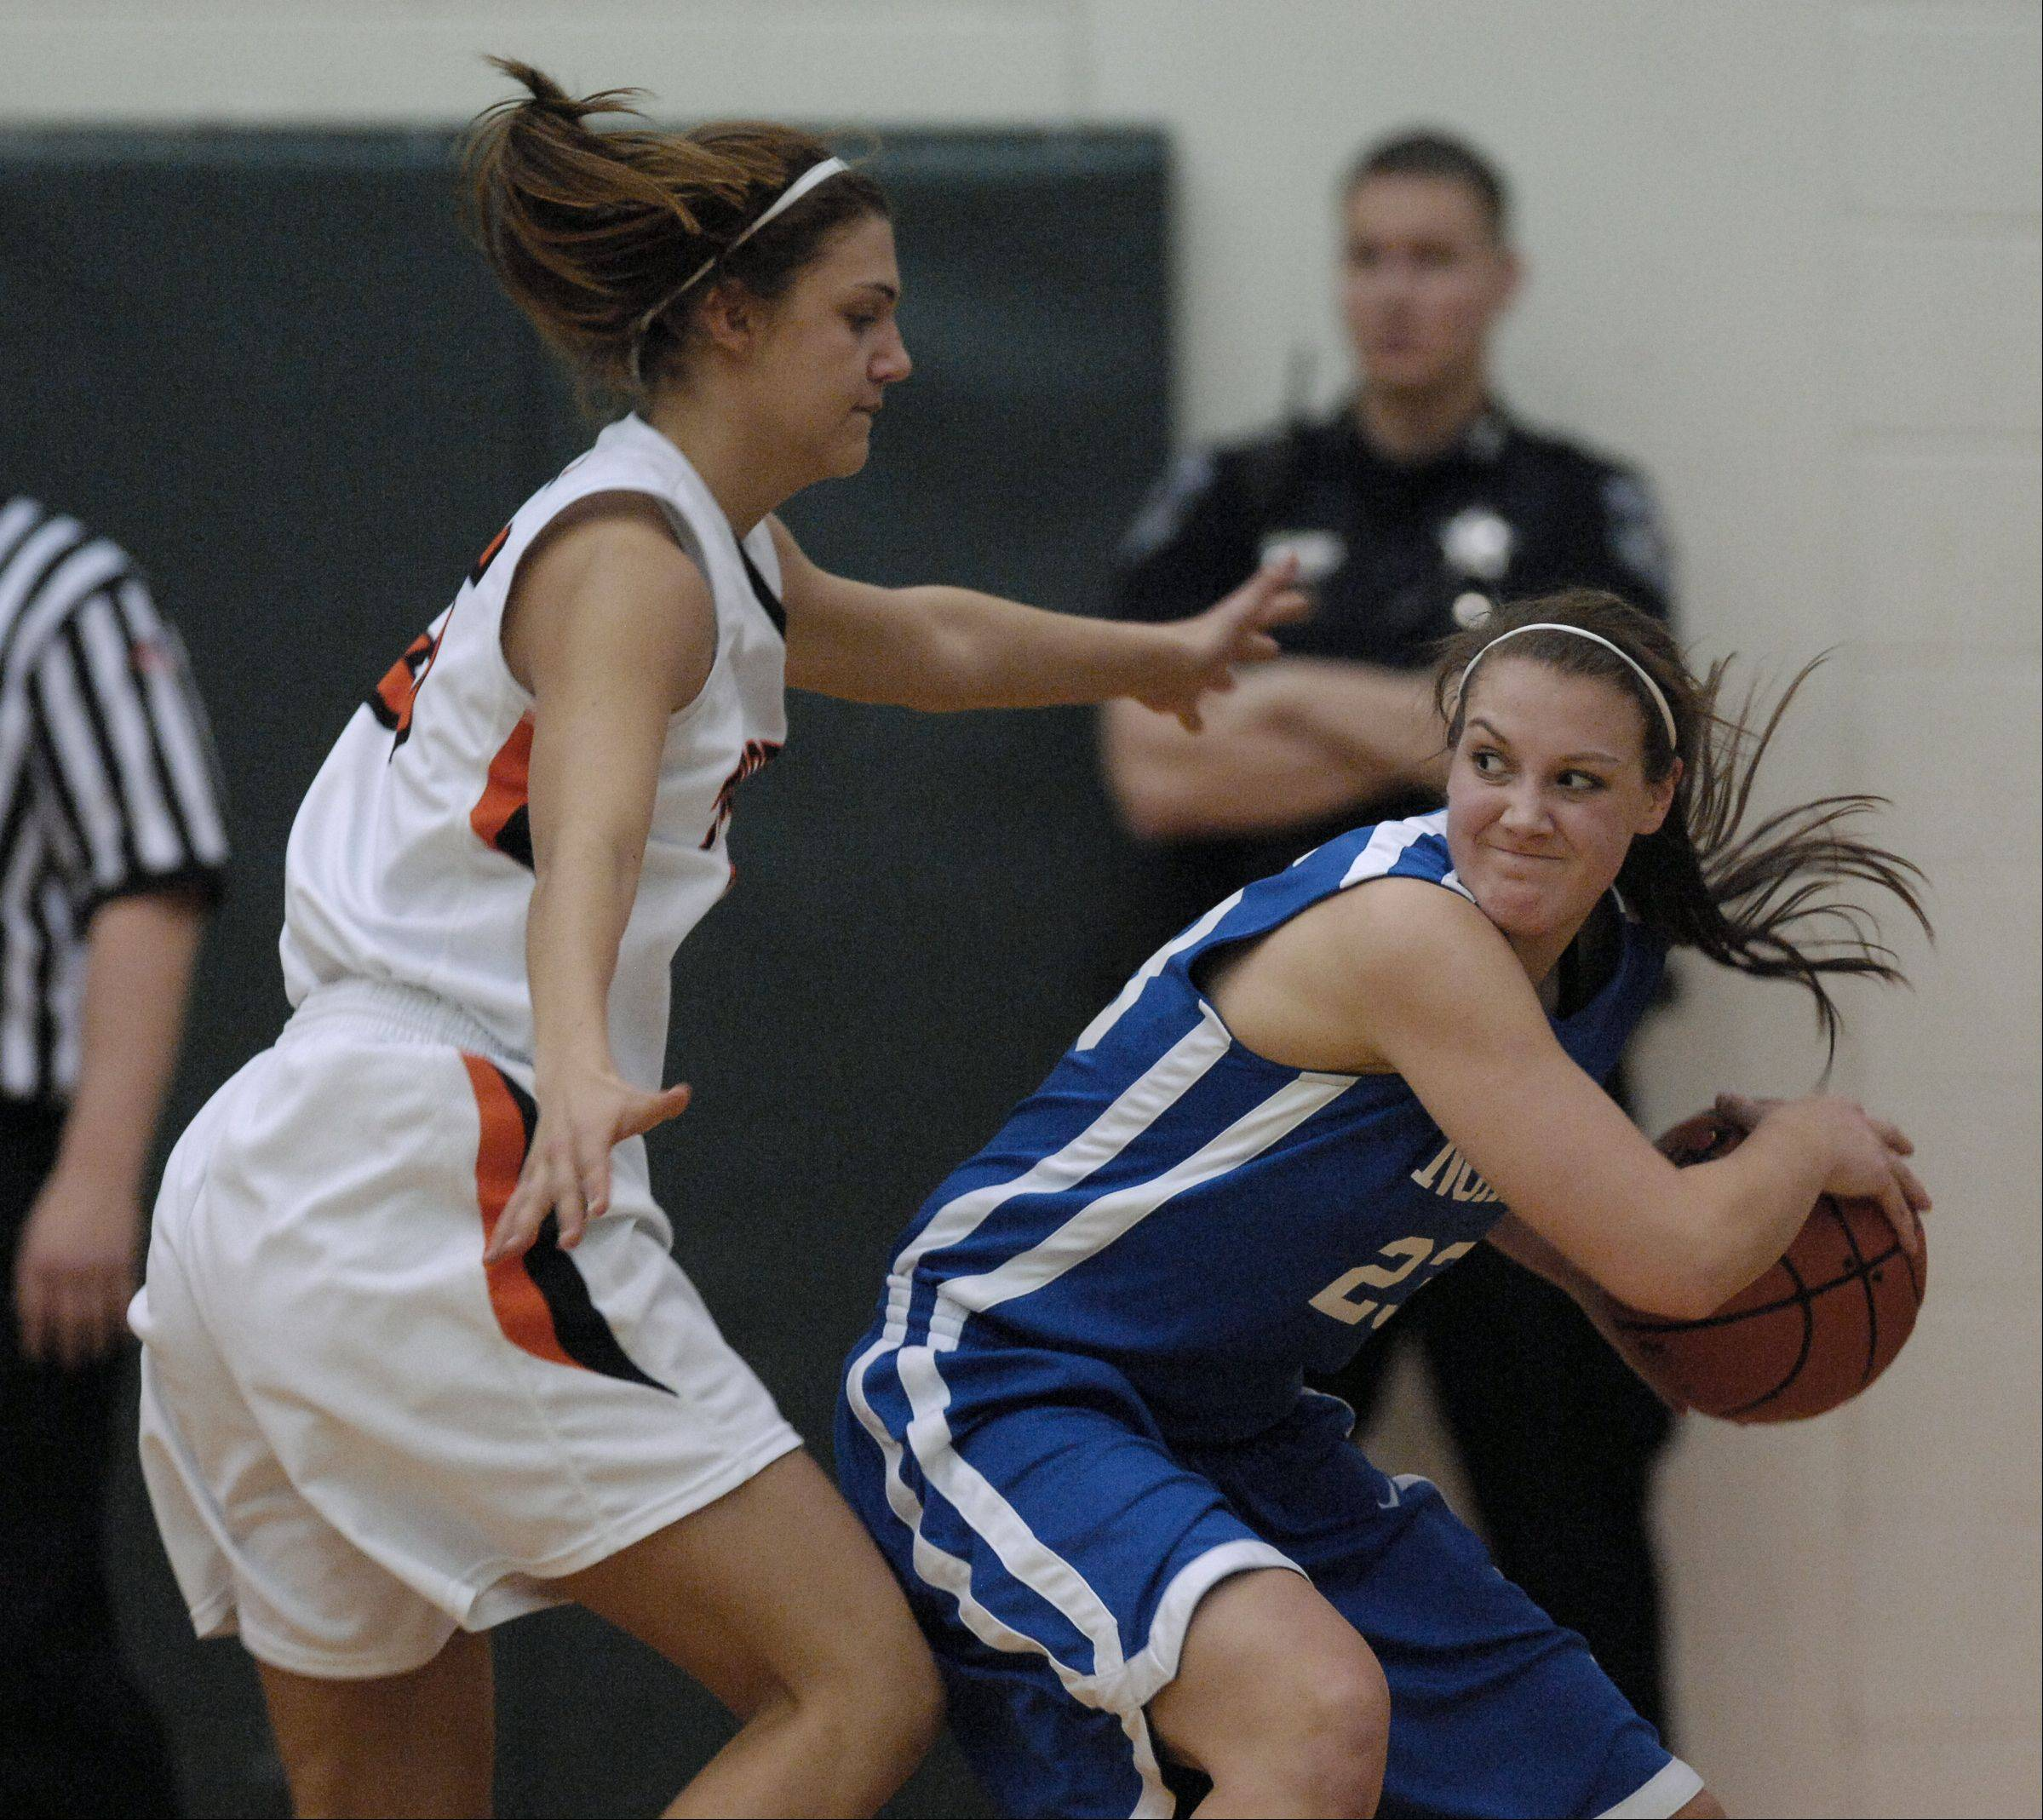 Alyssa Zappia of Wheaton Warrenville South guards Chrissy Baird of Wheaton North.